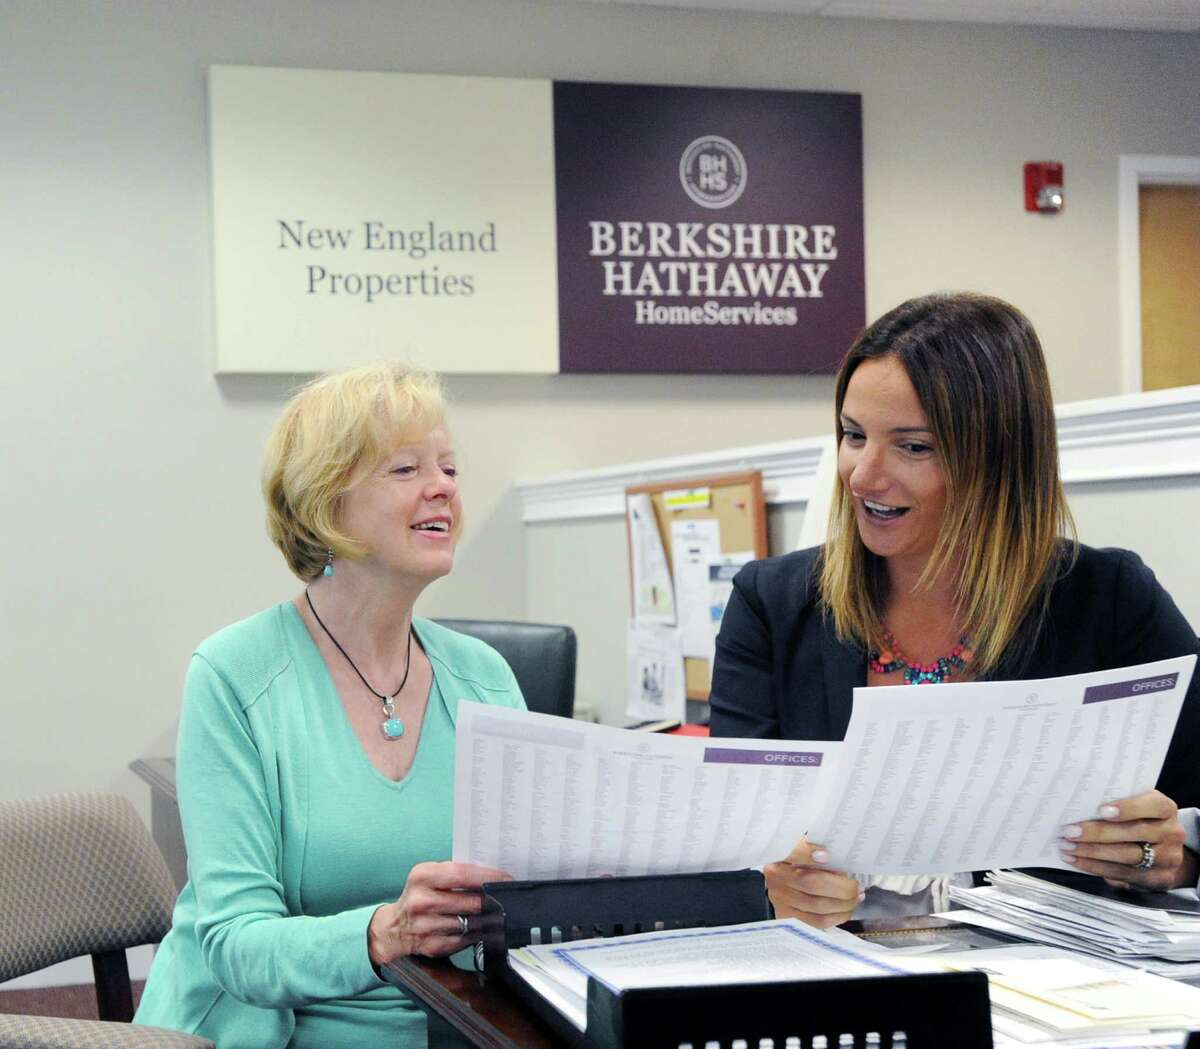 Julie Magrath, left, and Sivan Kerins, sales executives with Berkshire Hathaway HomeServices New England Properties, in their Darien office.